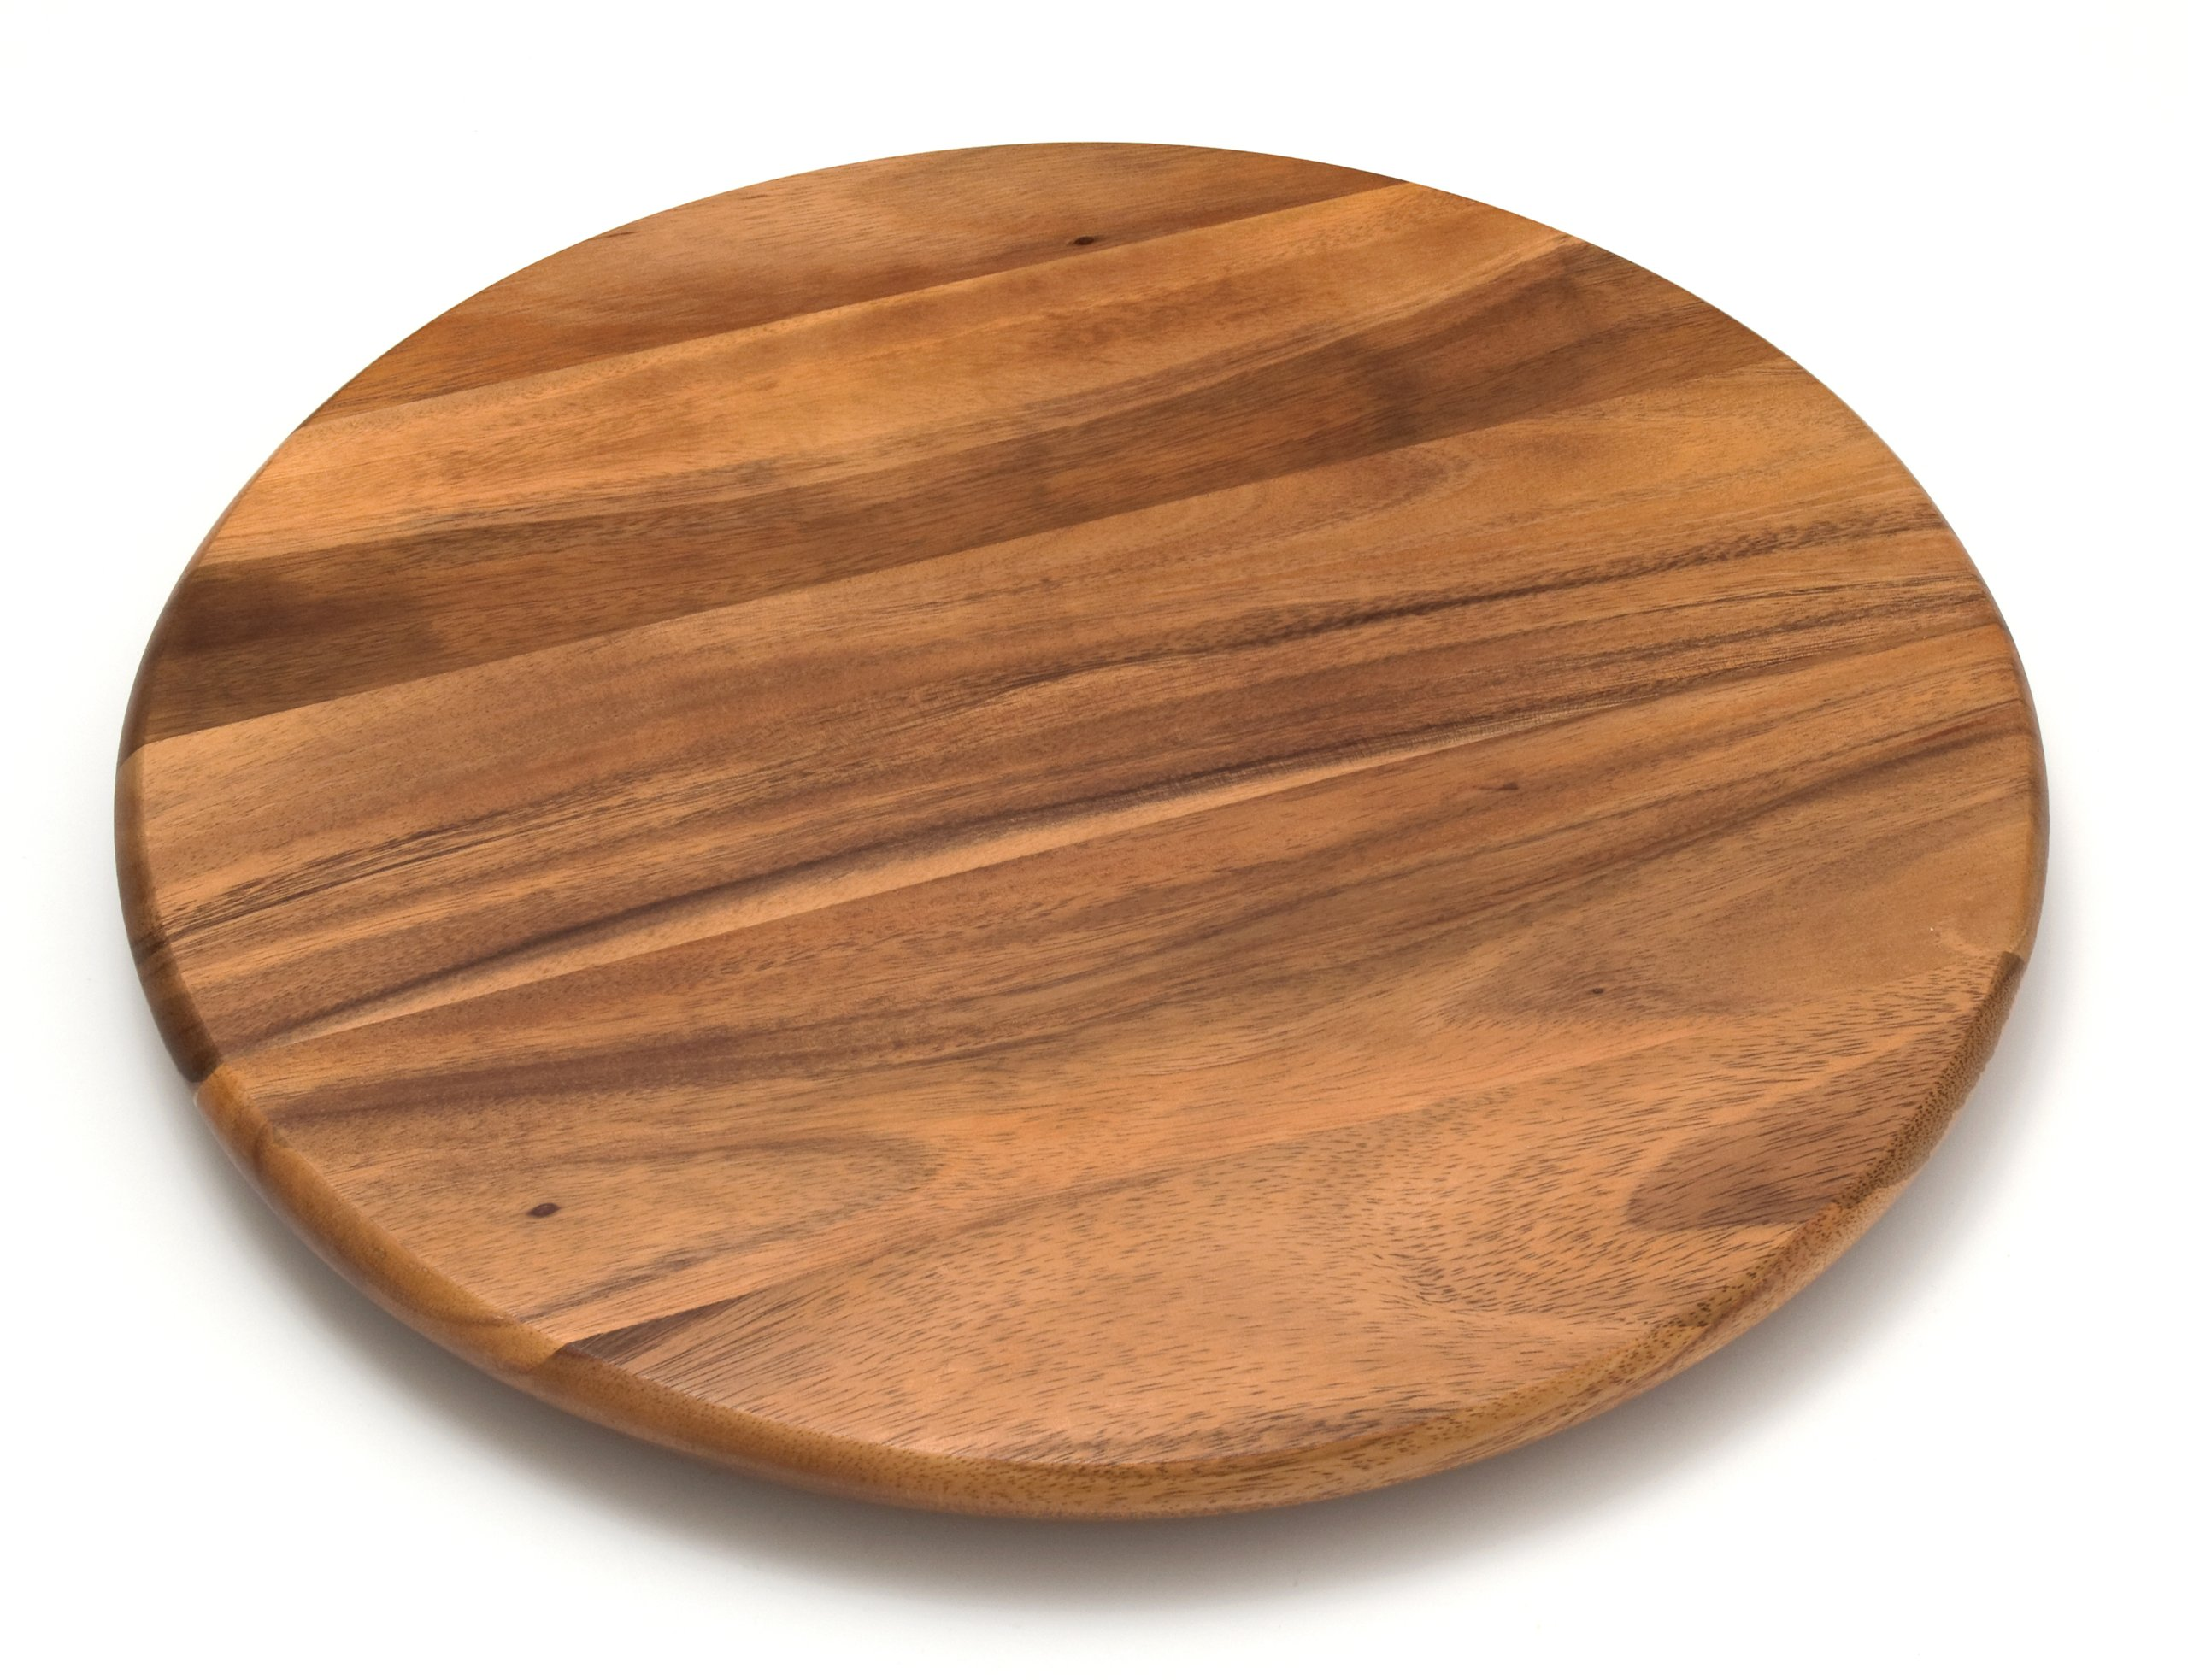 Lipper International 1118 Acacia Wood 18'' Lazy Susan Kitchen Turntable by Lipper International